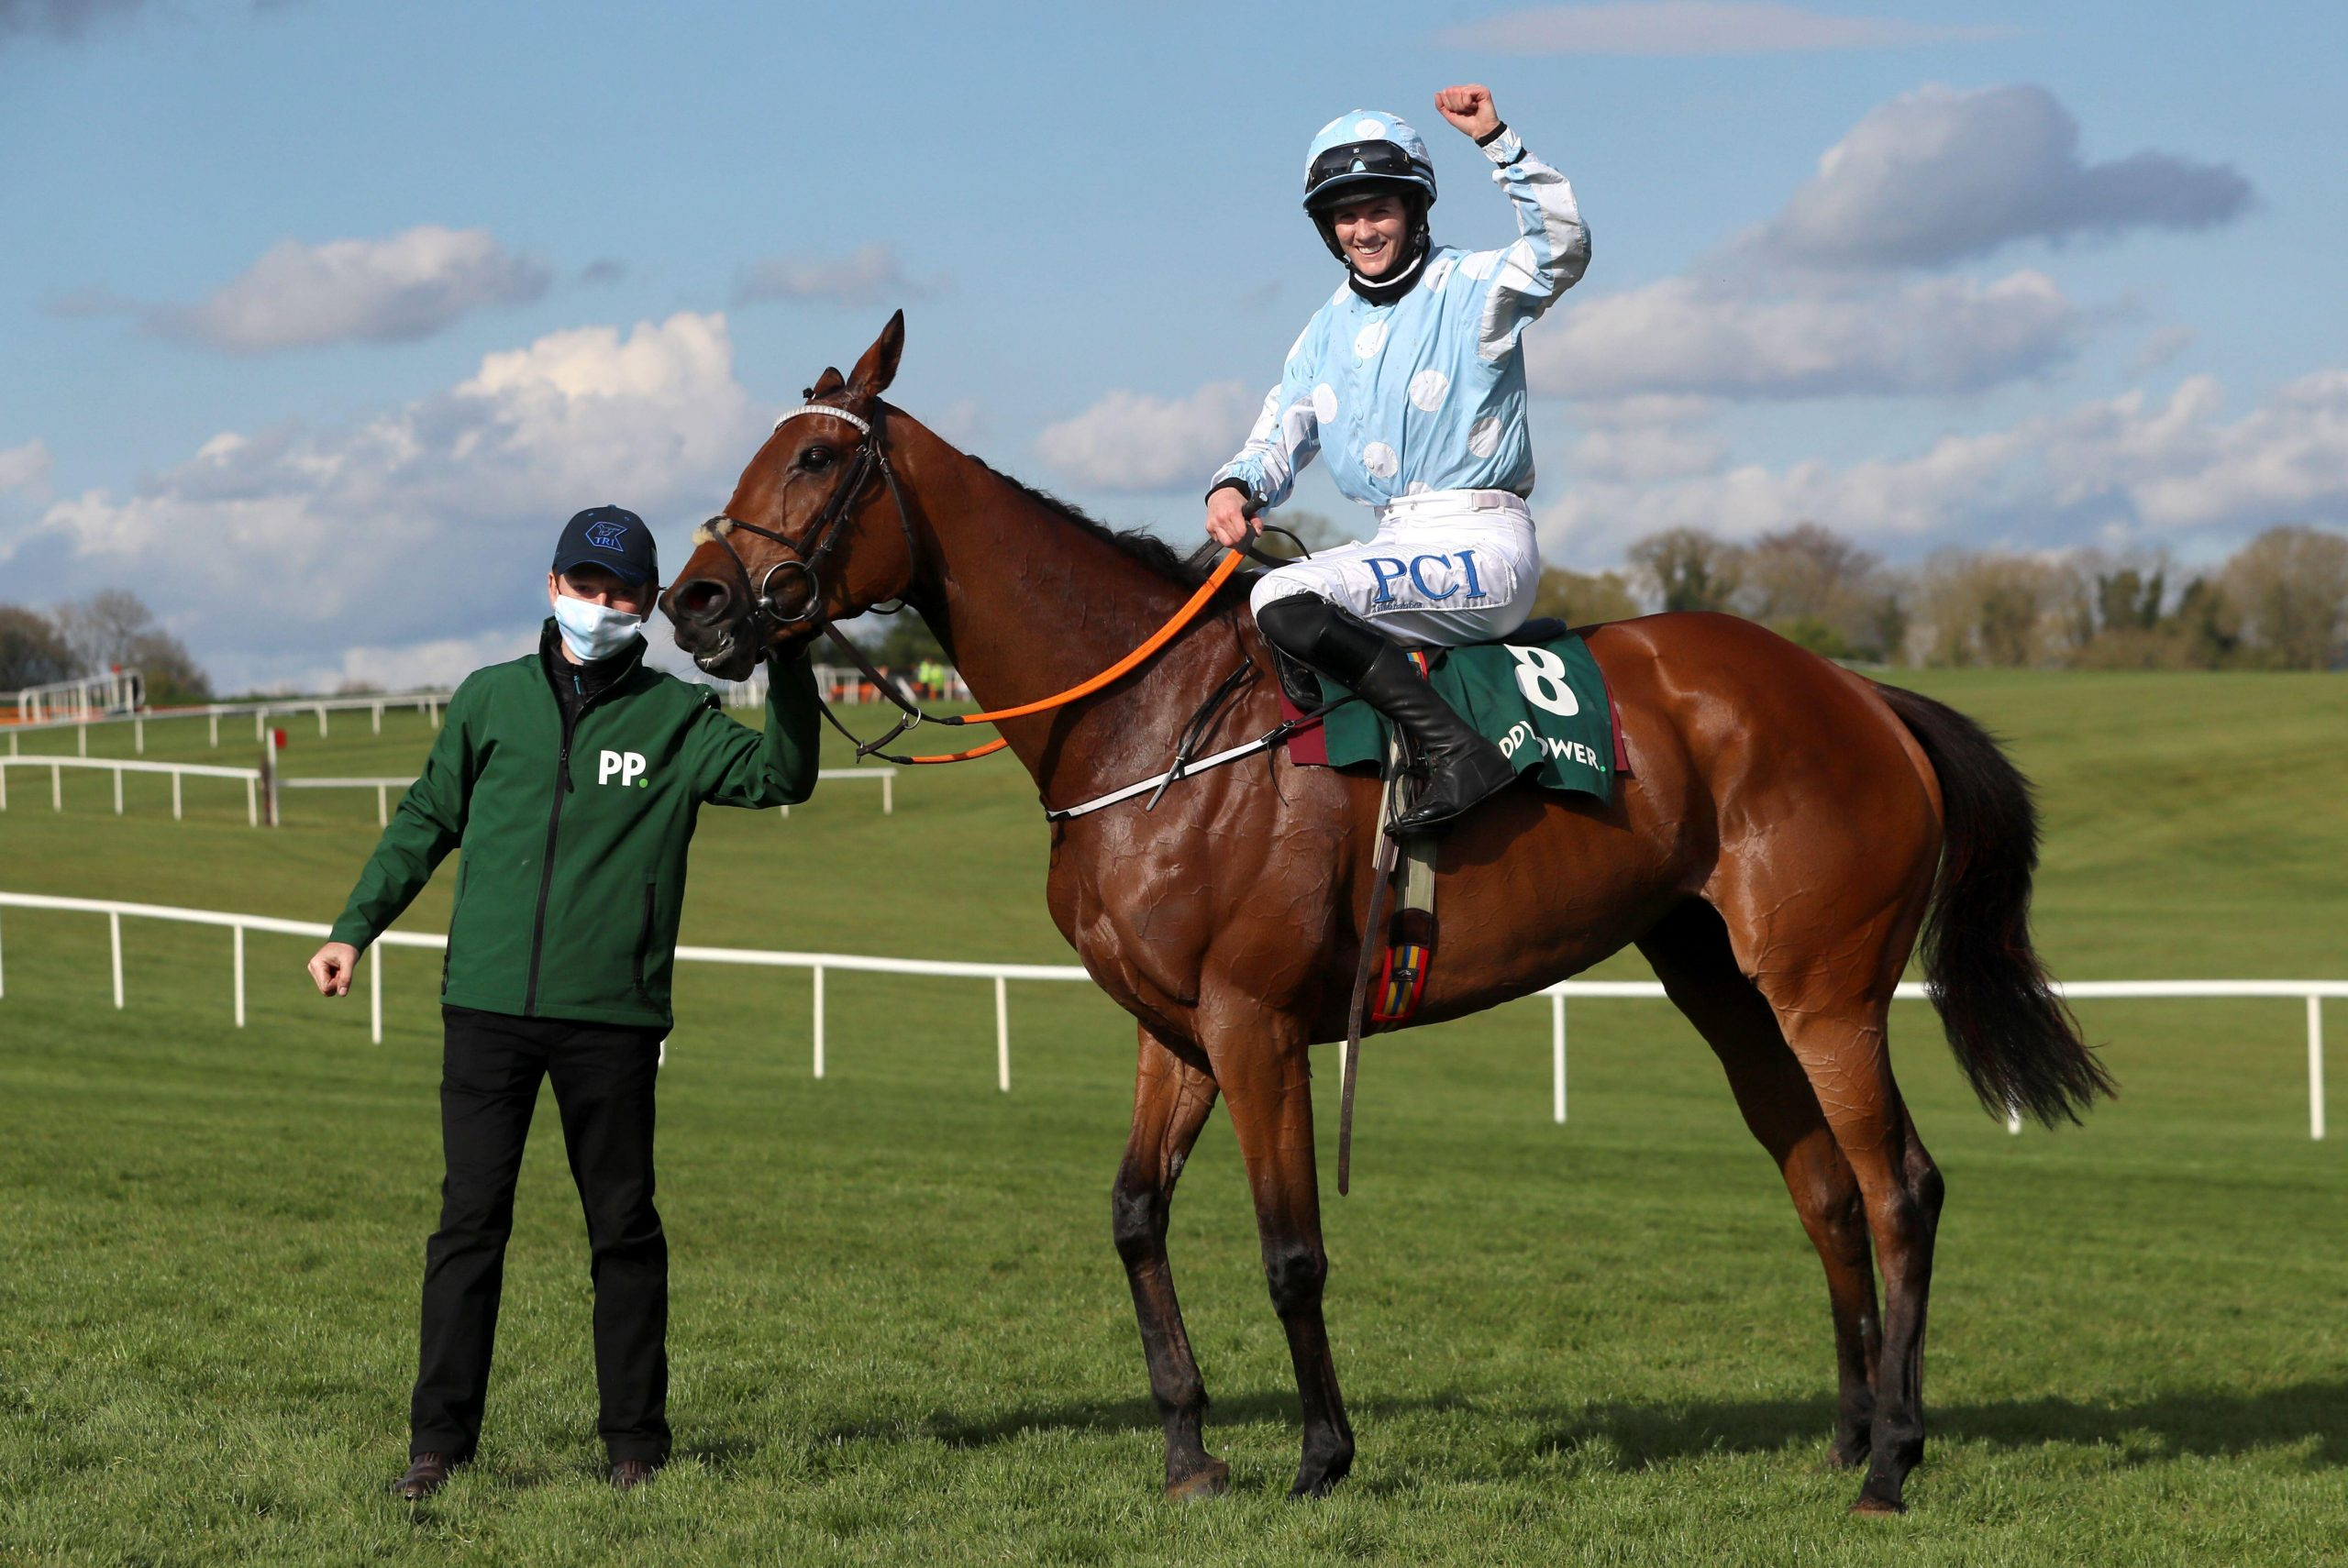 2FKCG3F Jockey Rachael Blackmore celebrates after winning the Paddy Power Champion Hurdle with Honeysuckle, during Day Four of the Punchestown Festival at Punchestown Racecourse in County Kildare, Ireland. Issue date: Friday April 30, 2021.